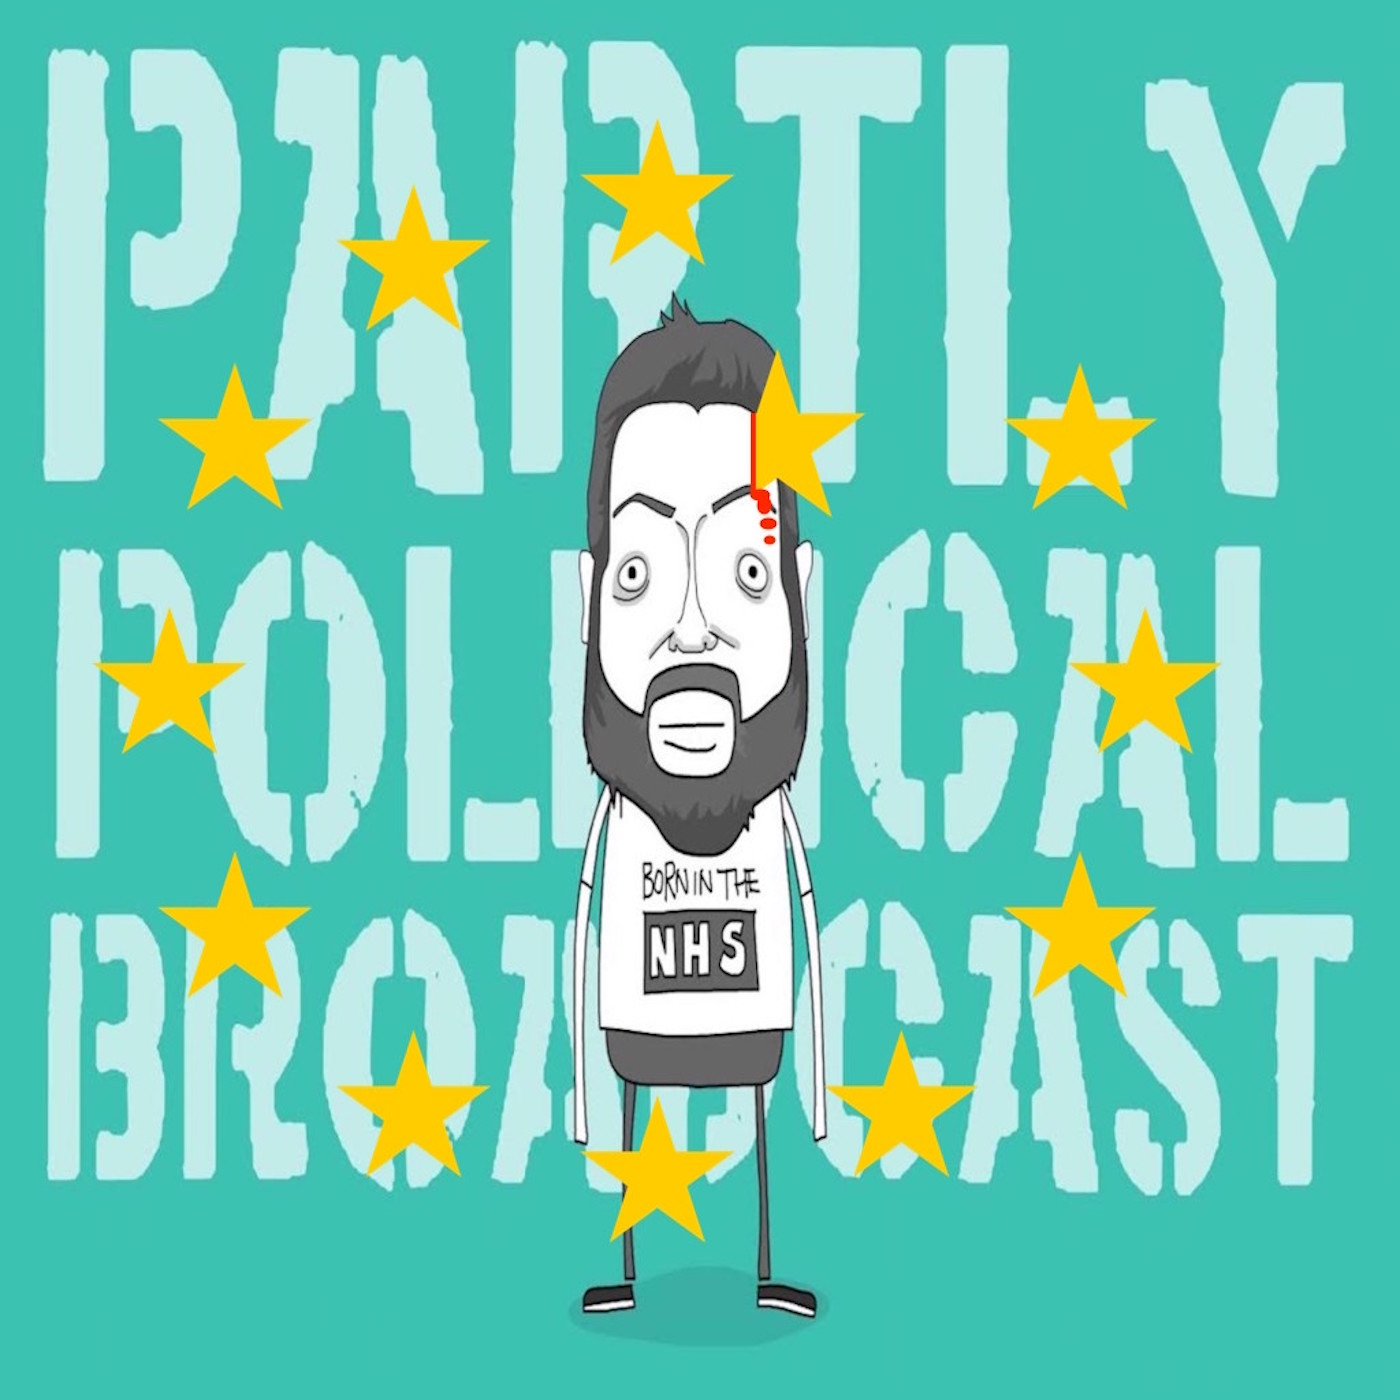 Episode 122 – We Are All Bob – Brexit Deal, Our Future Our Choice, Brexit Brexit Brexit Brexit